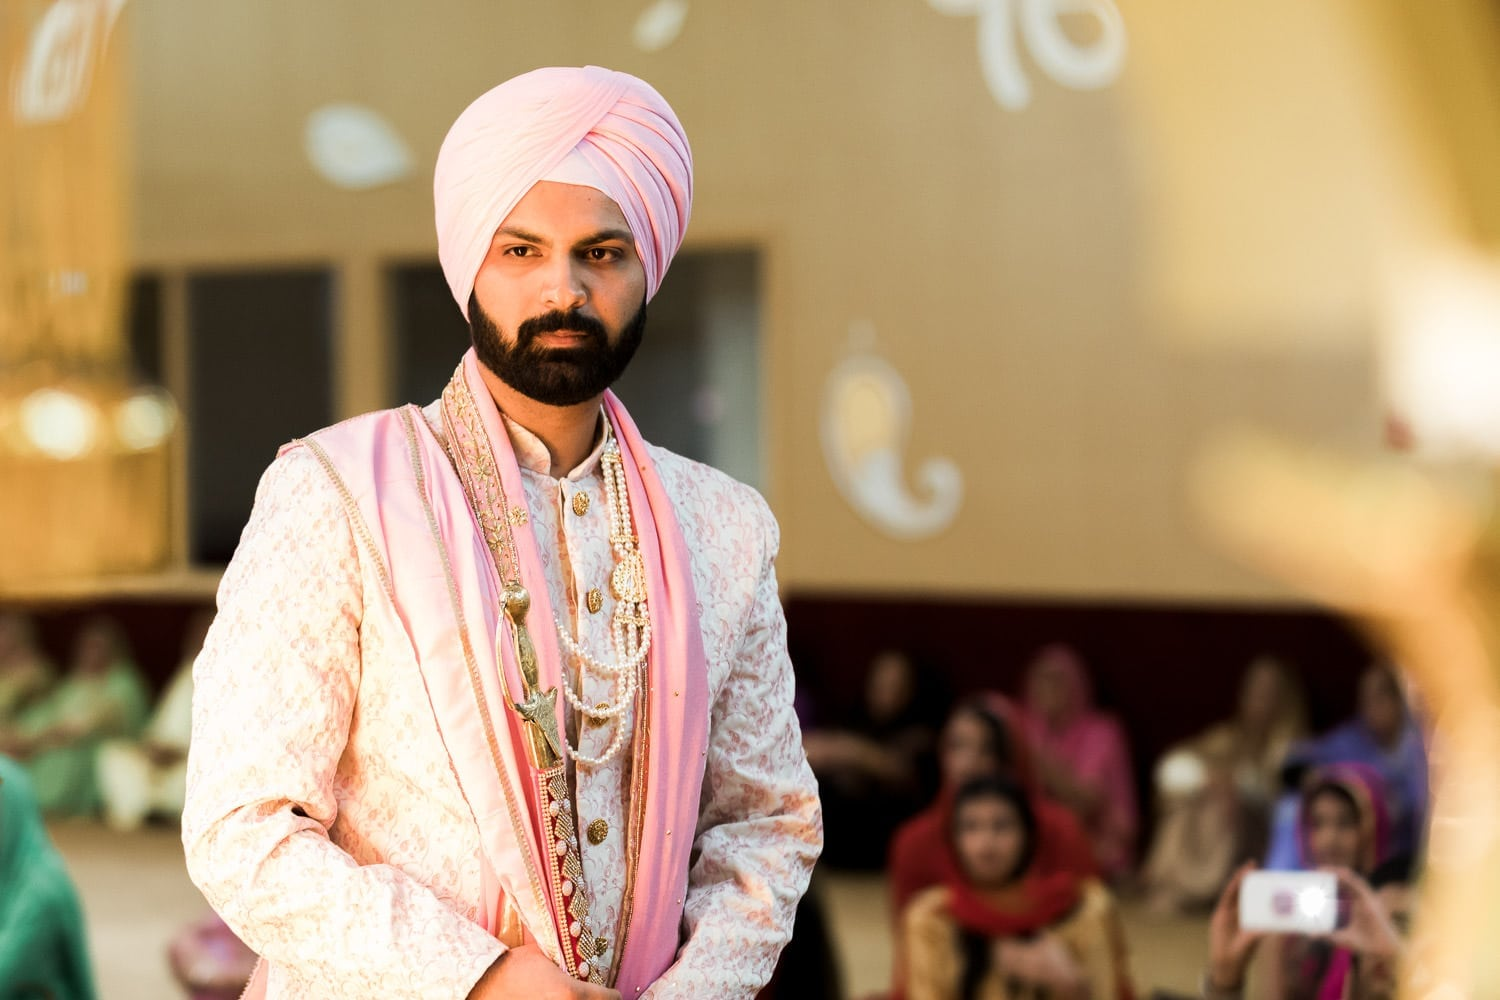 Indian groom at the temple | Indian wedding photography Vancouver